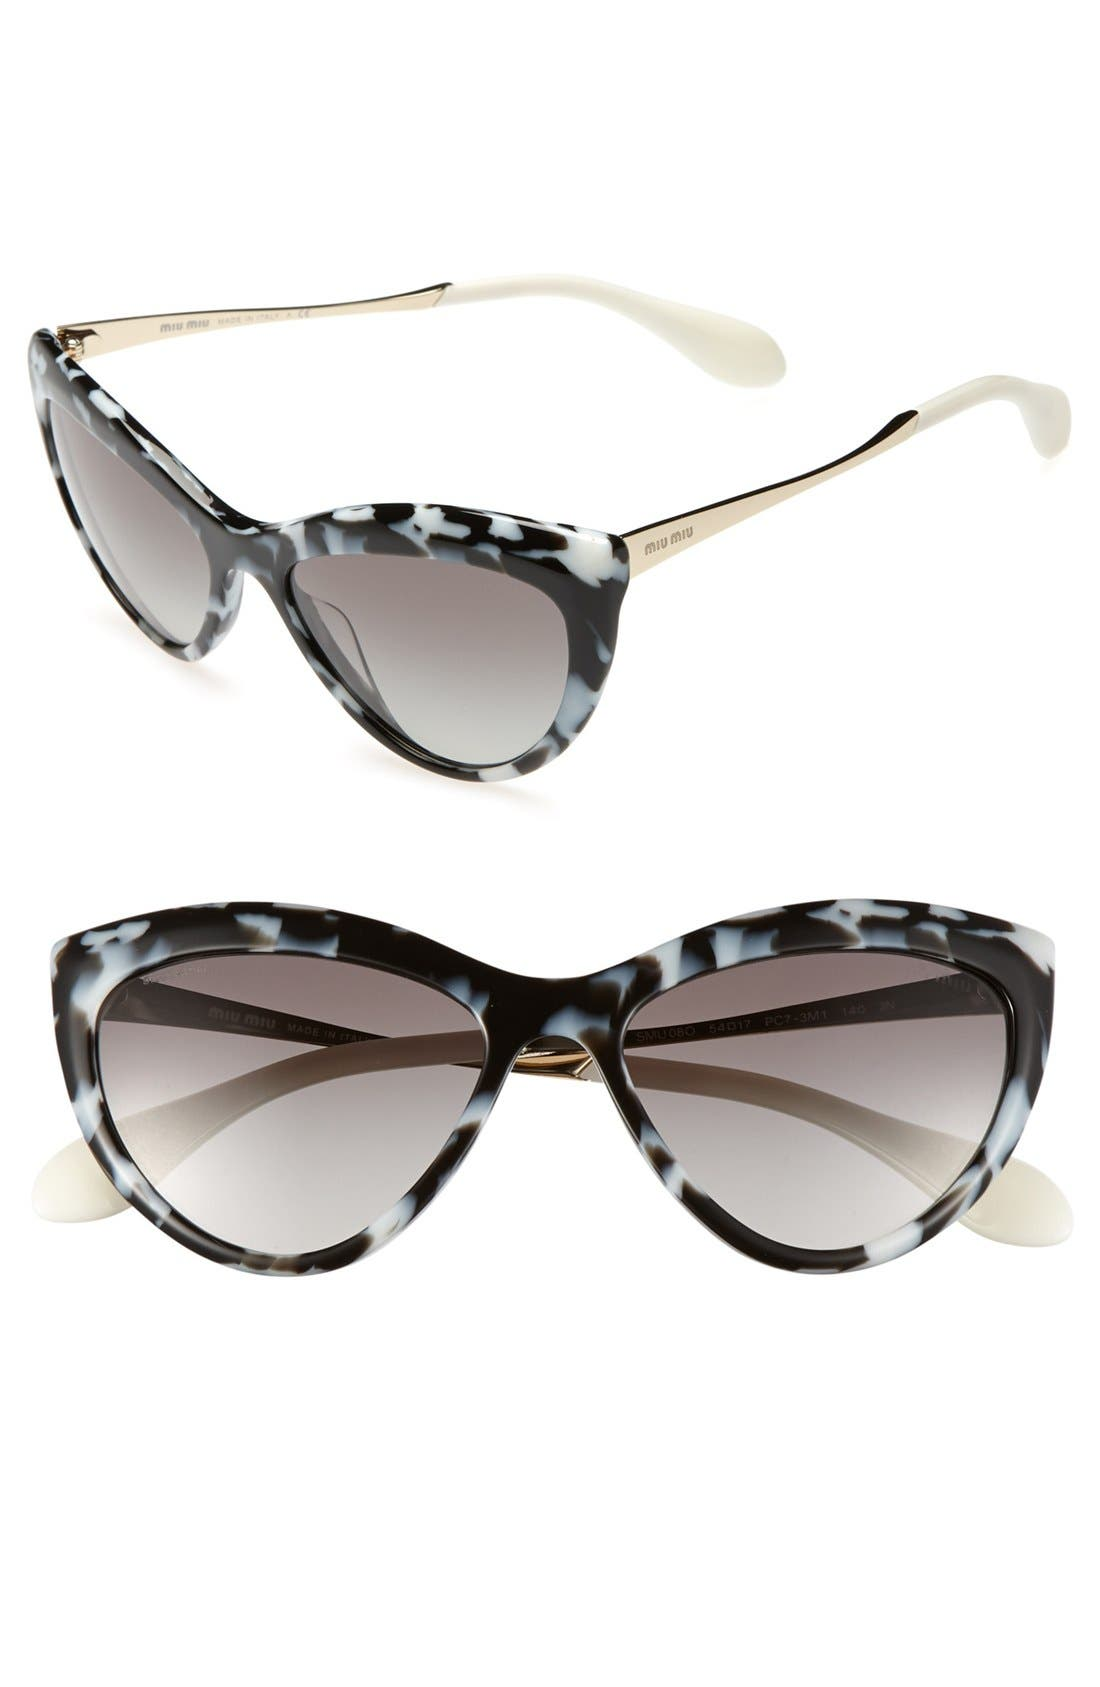 Alternate Image 1 Selected - Miu Miu 54mm Cat Eye Sunglasses